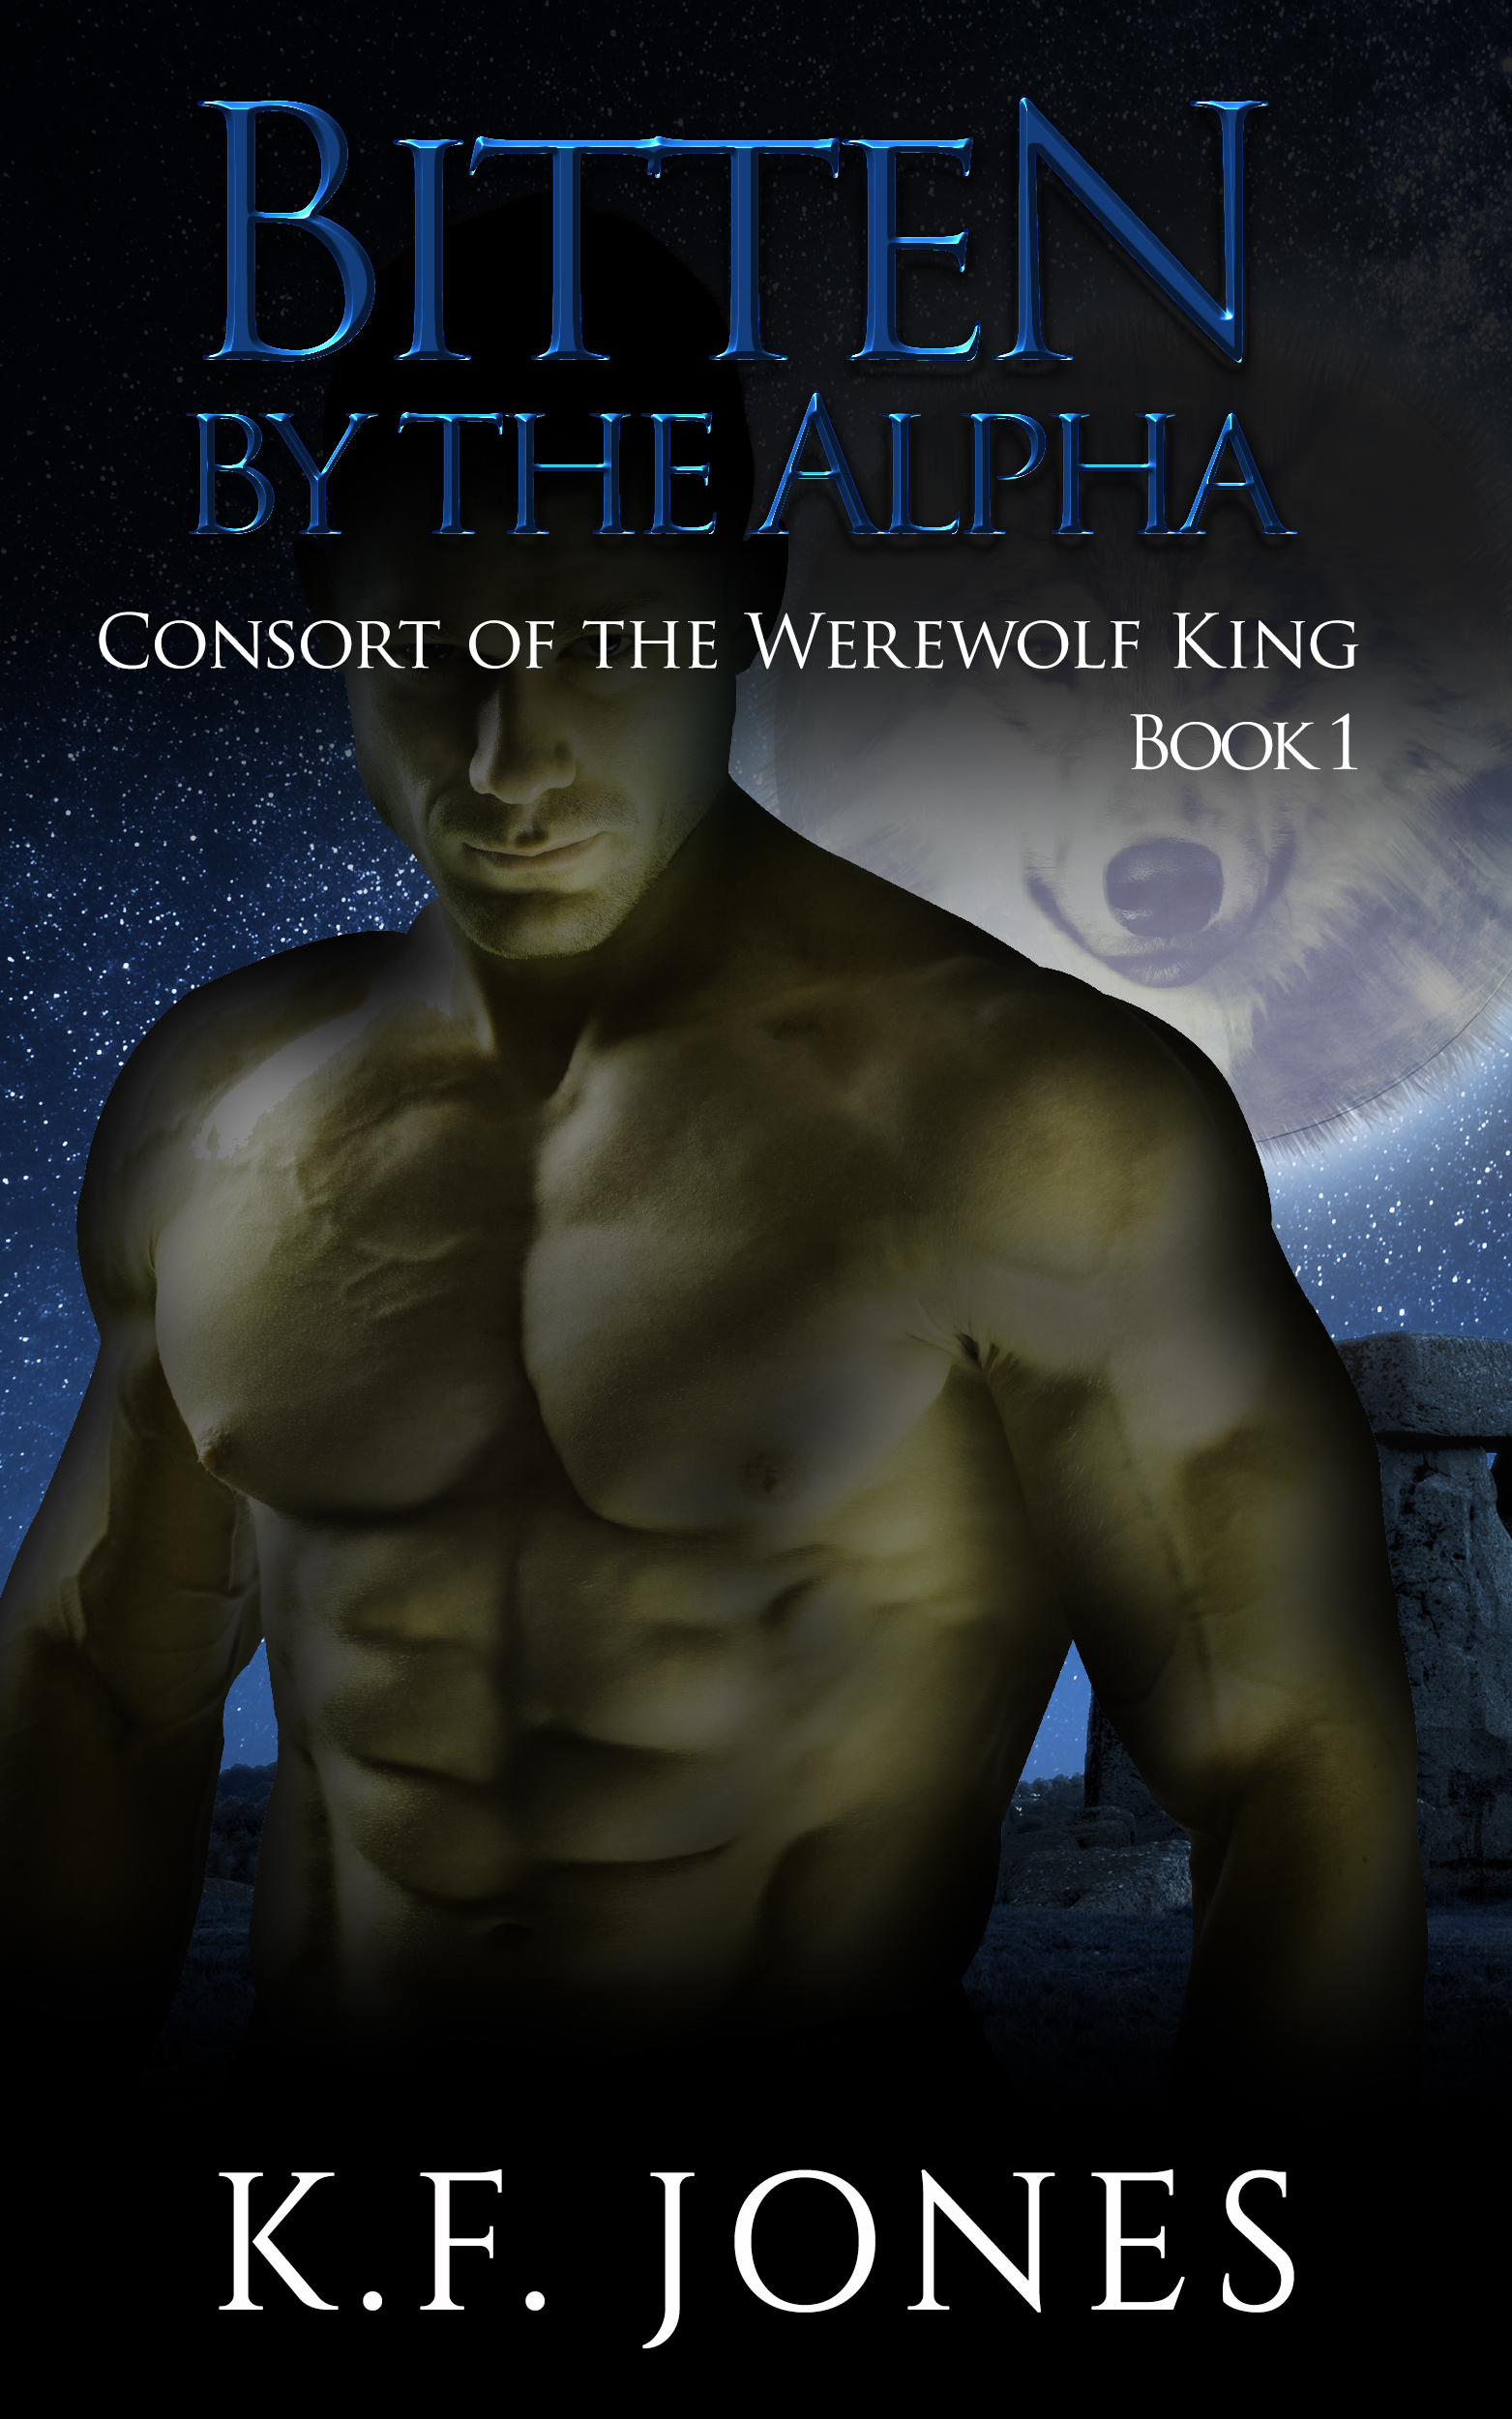 Bitten by the Alpha - Consort of the Werewolf King Book 1